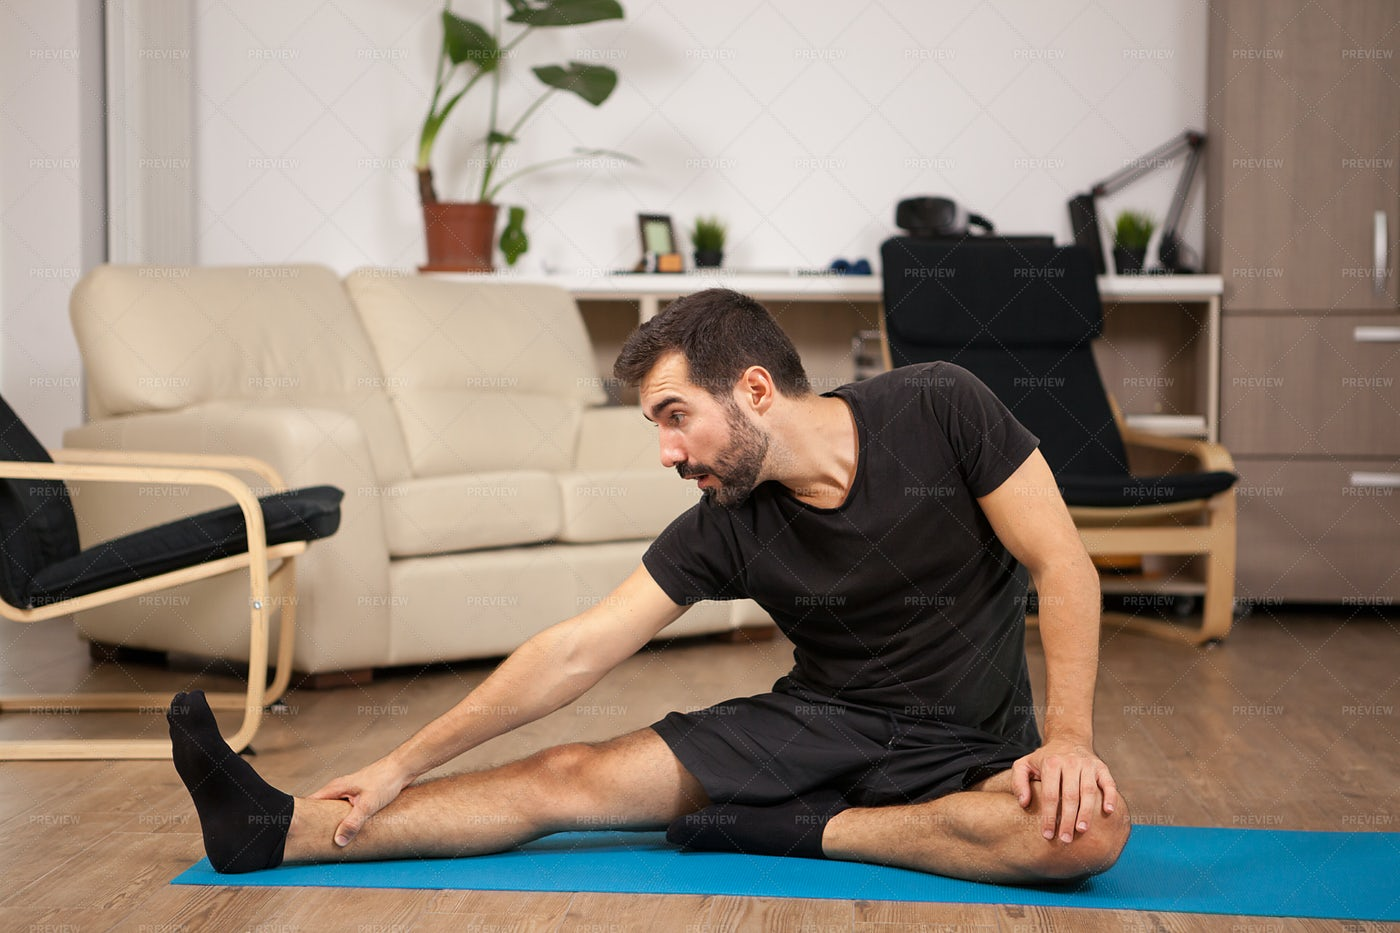 Yoga In The Living Room: Stock Photos